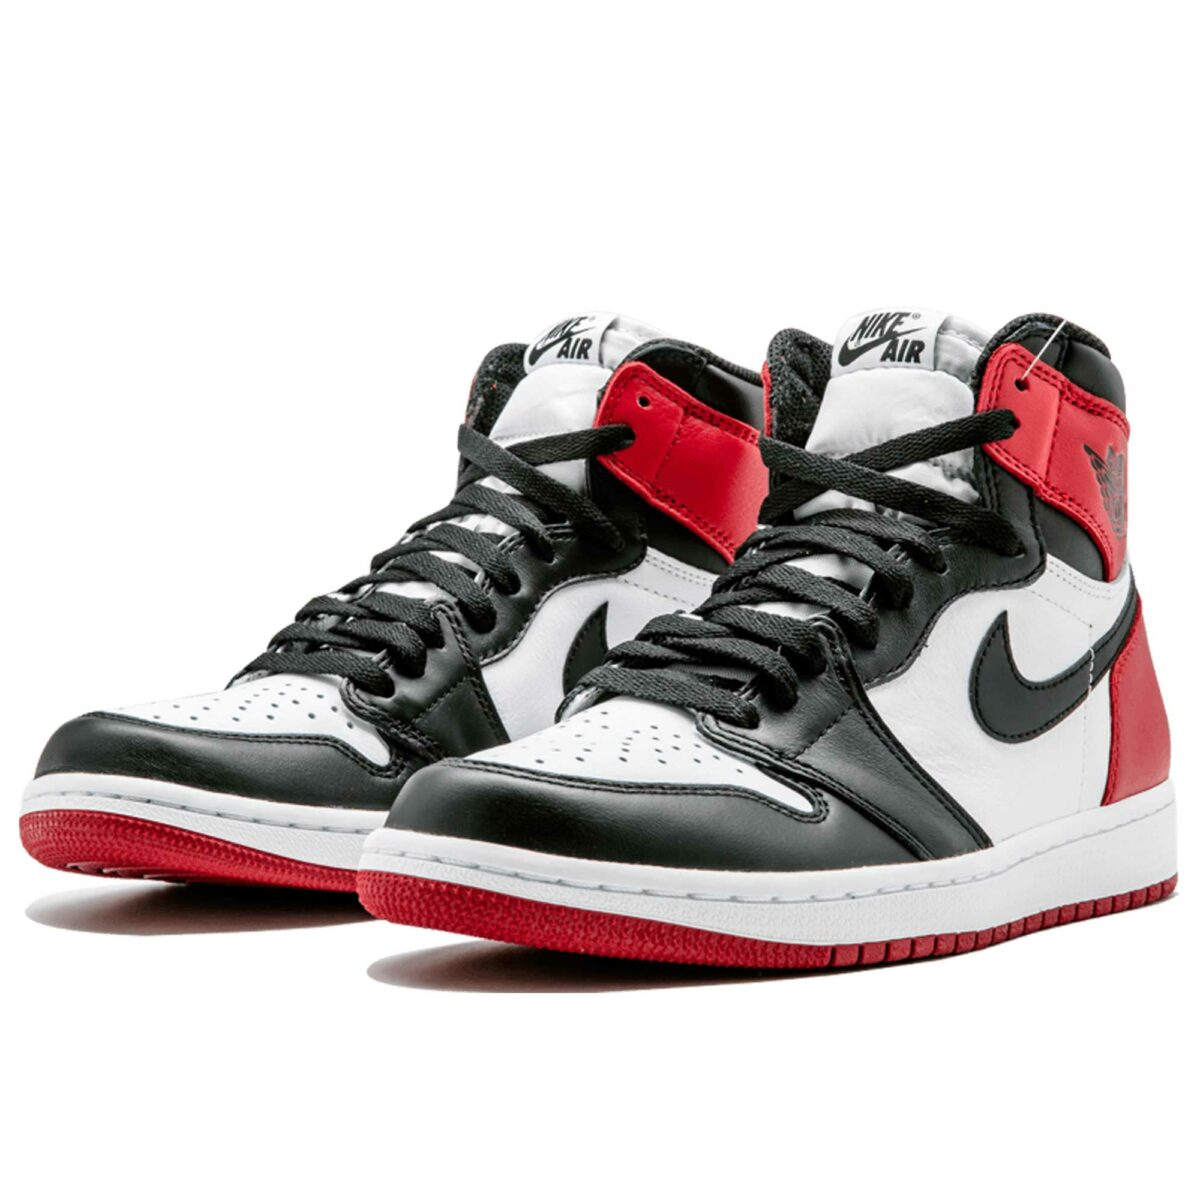 nike air Jordan 1 retro high og black toe 555088_125 купить